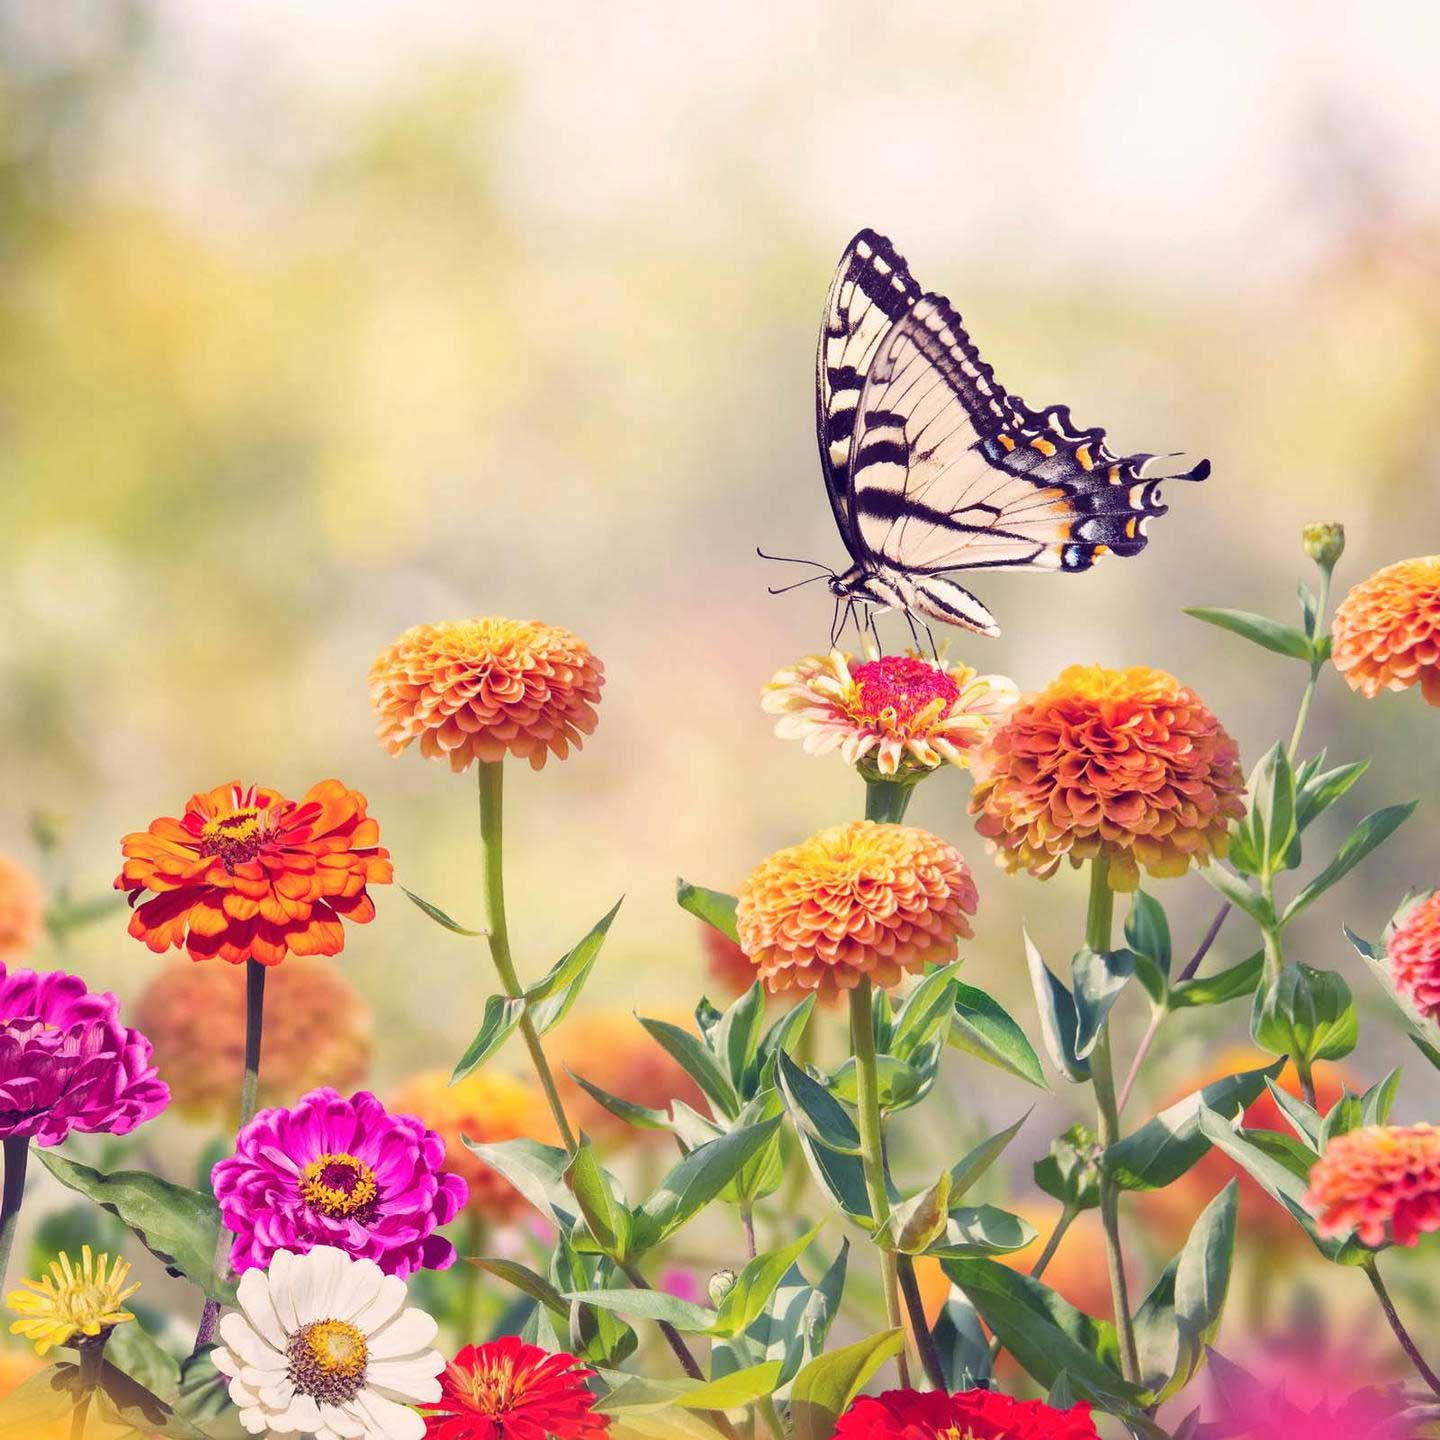 A swallowtail butterfly rests on a container garden of colorful zinnia flowers